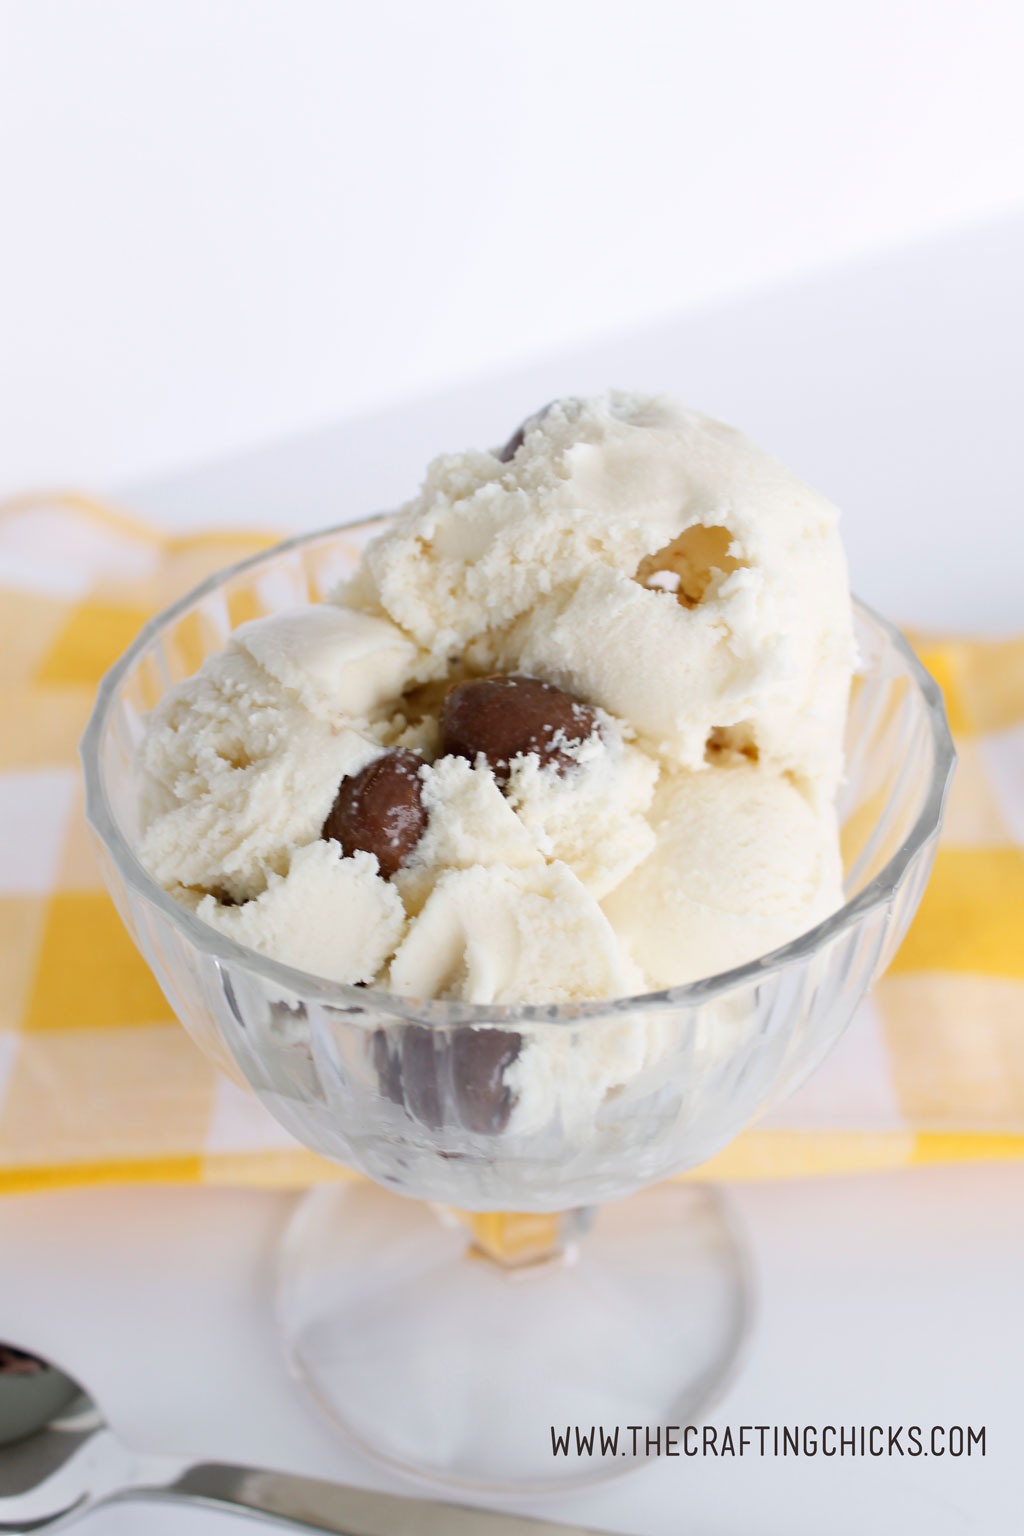 Chunky Monkey Homemade Ice Cream will be a family favorite. So easy to make and tastes delicious.